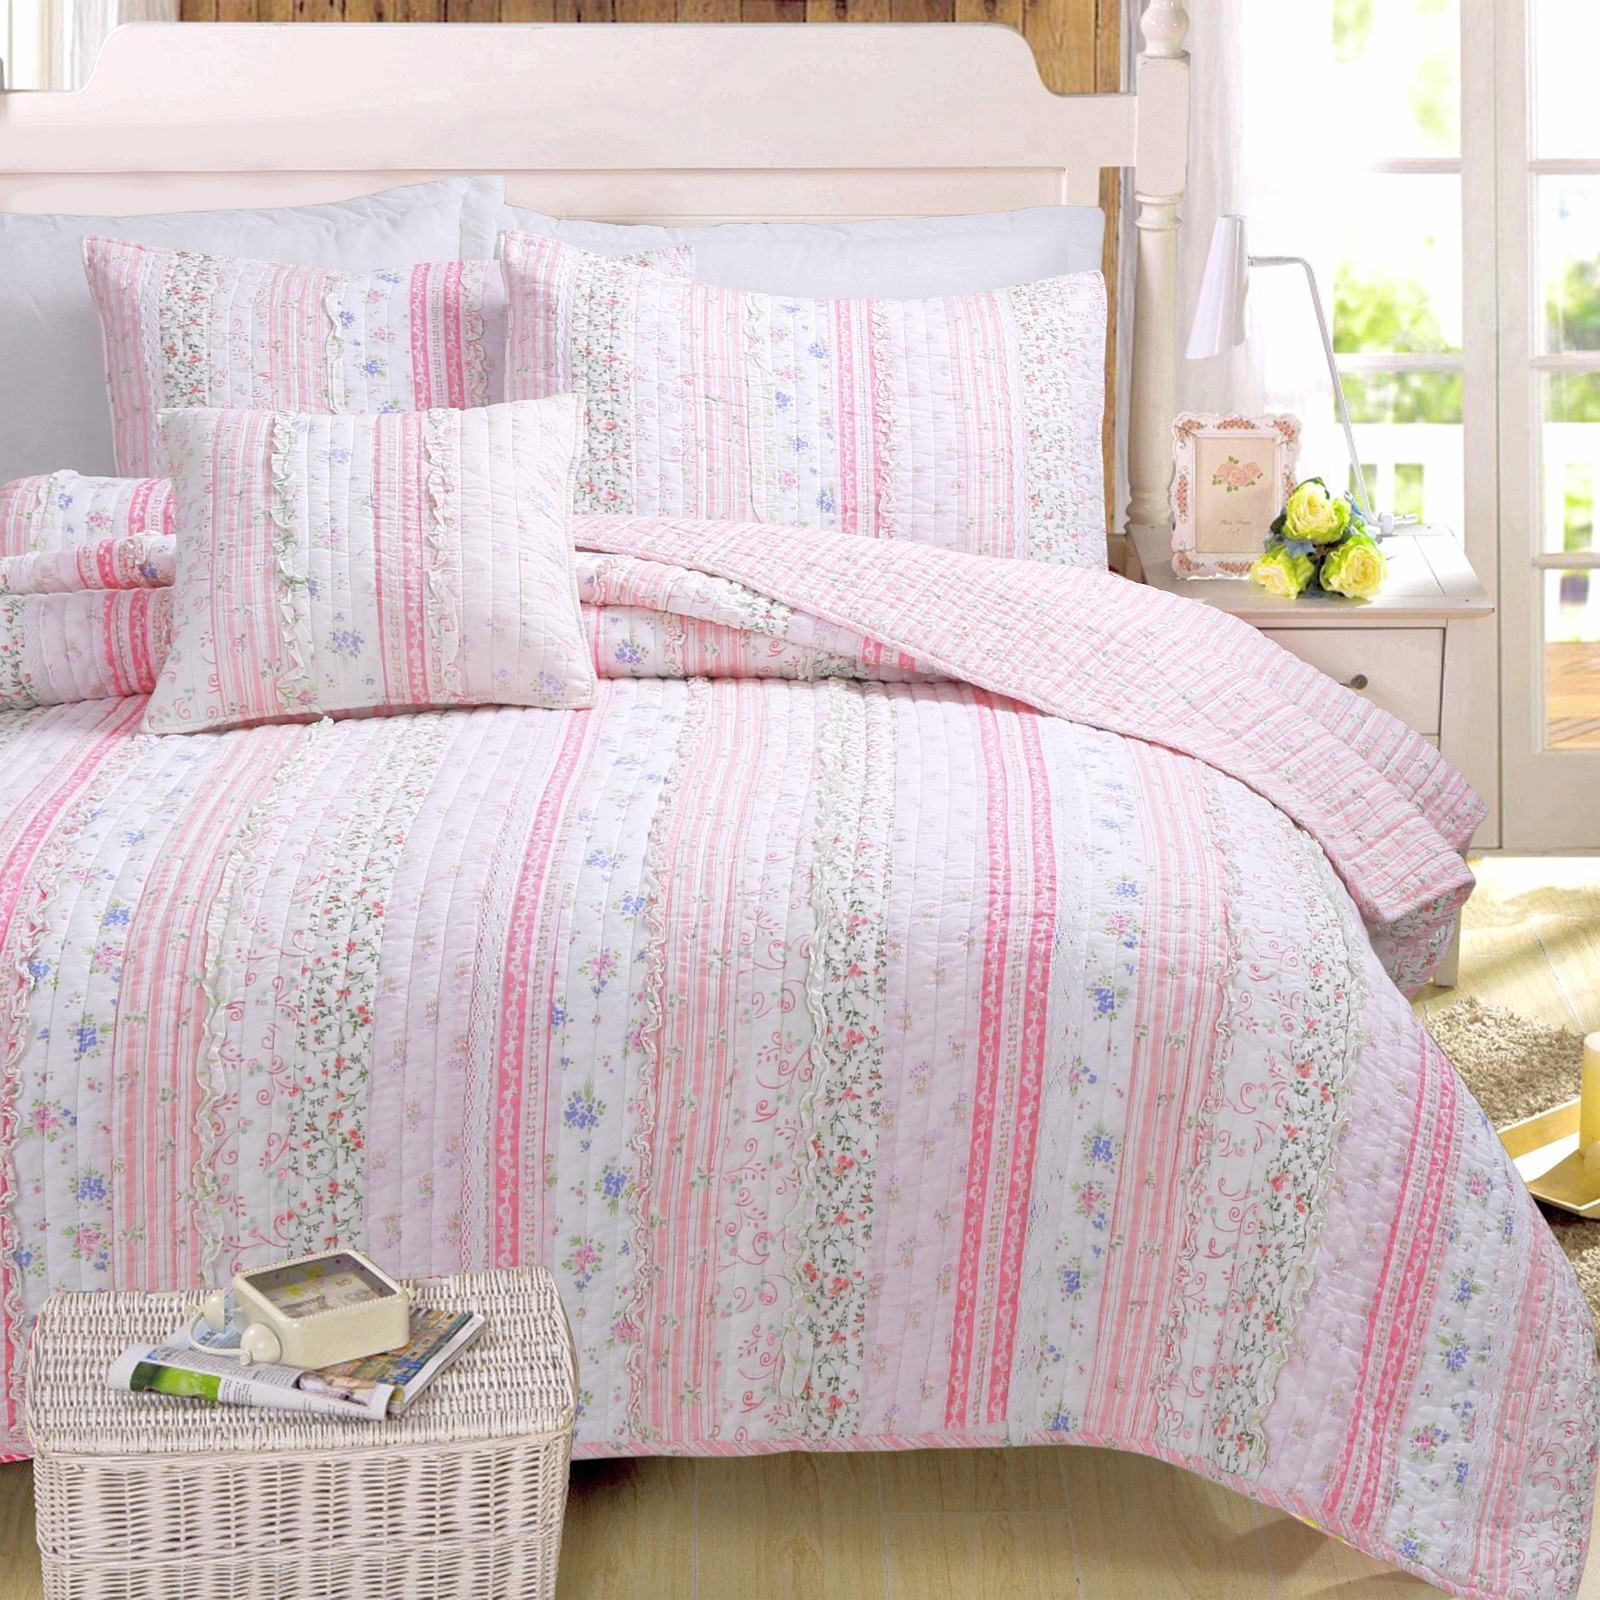 Pink Romantic Embroidered Chic Lace 100% Cotton Quilt Set, B